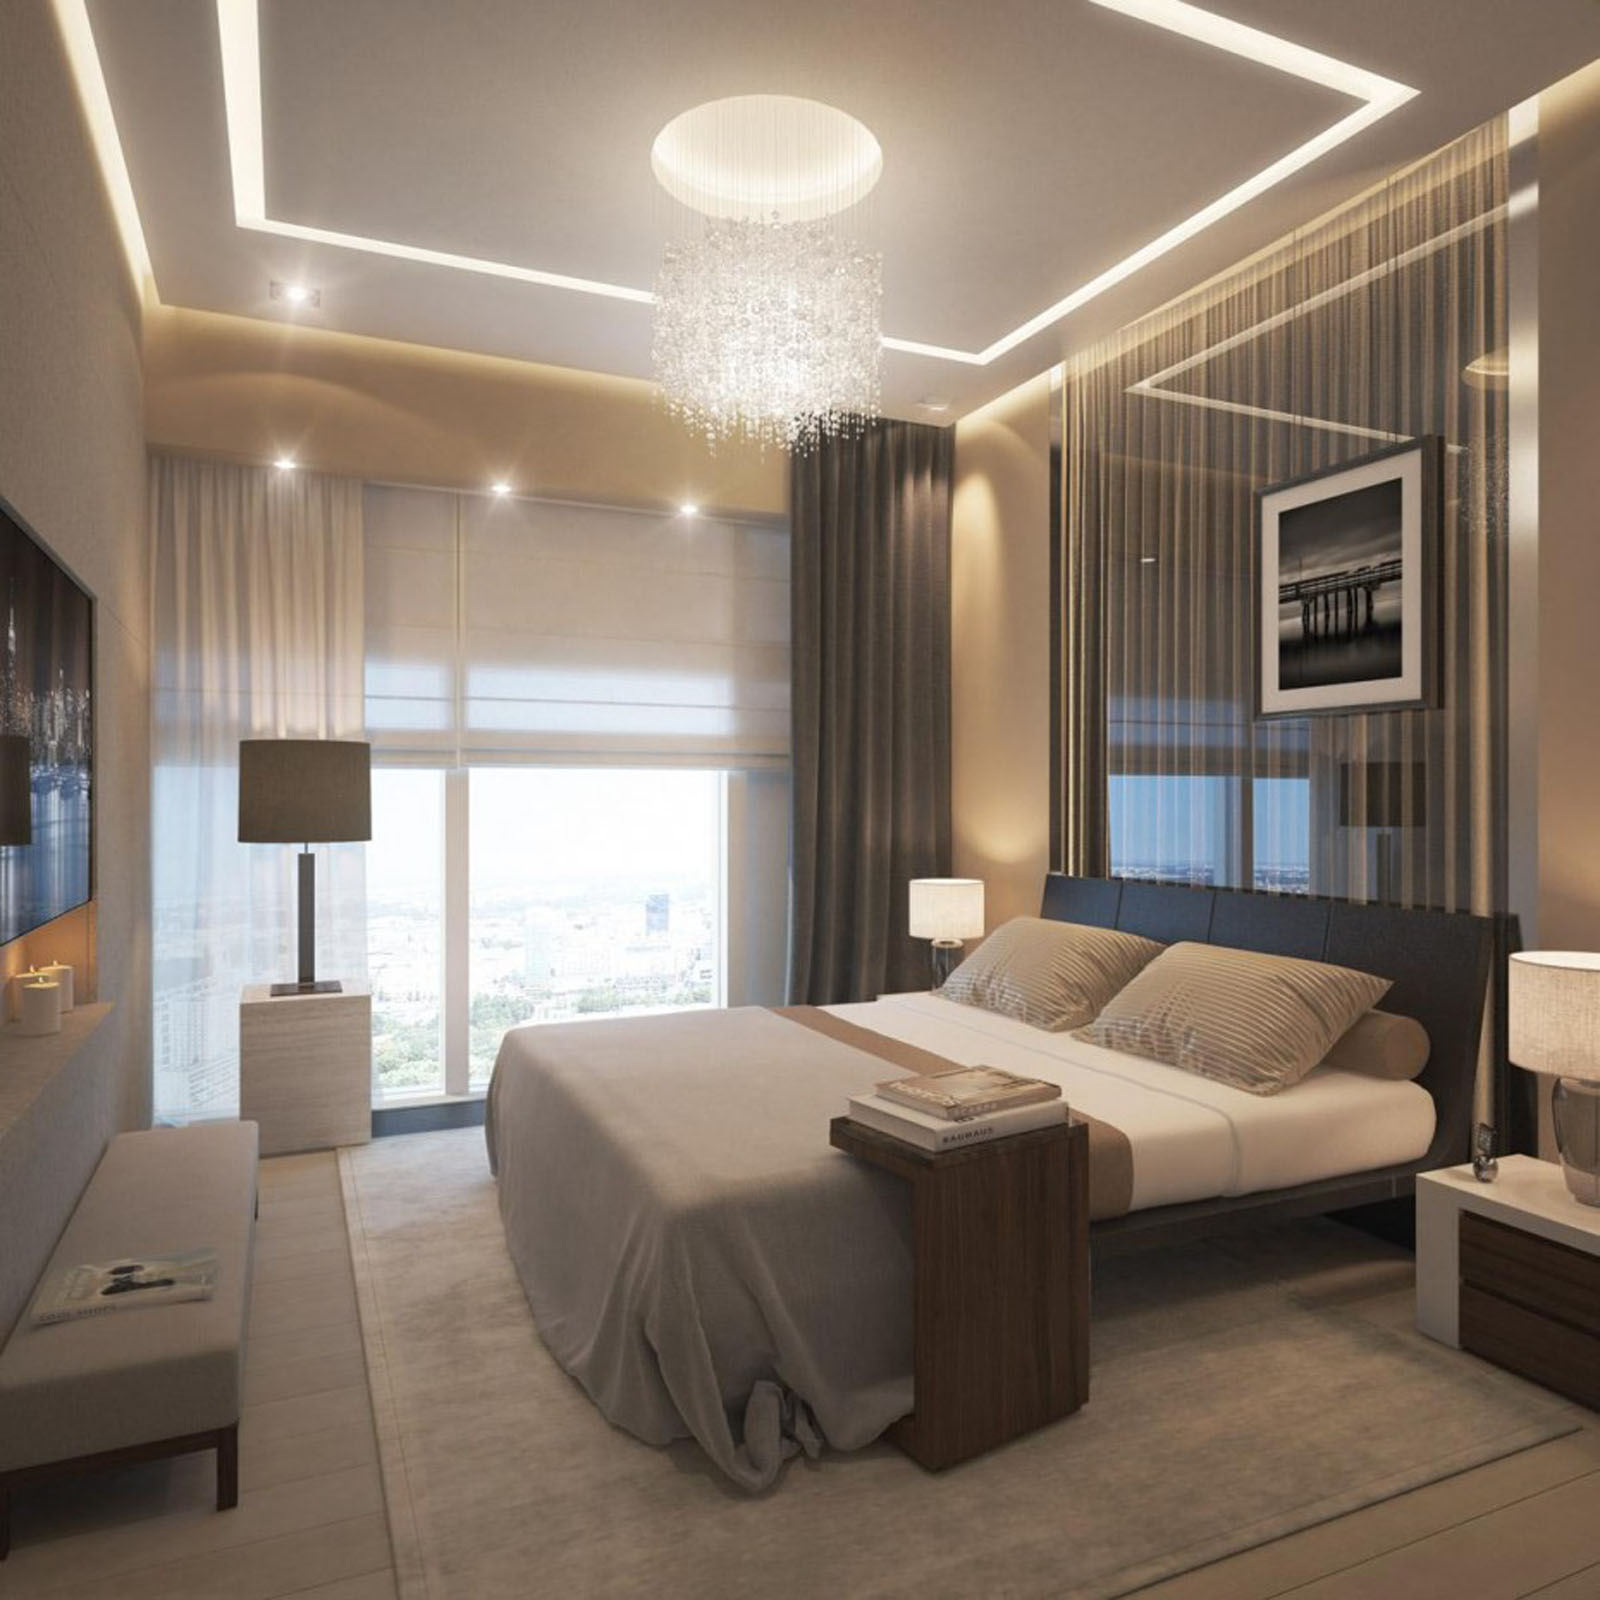 Adding fort to Your Bedroom Using Ceiling Bedroom Lights